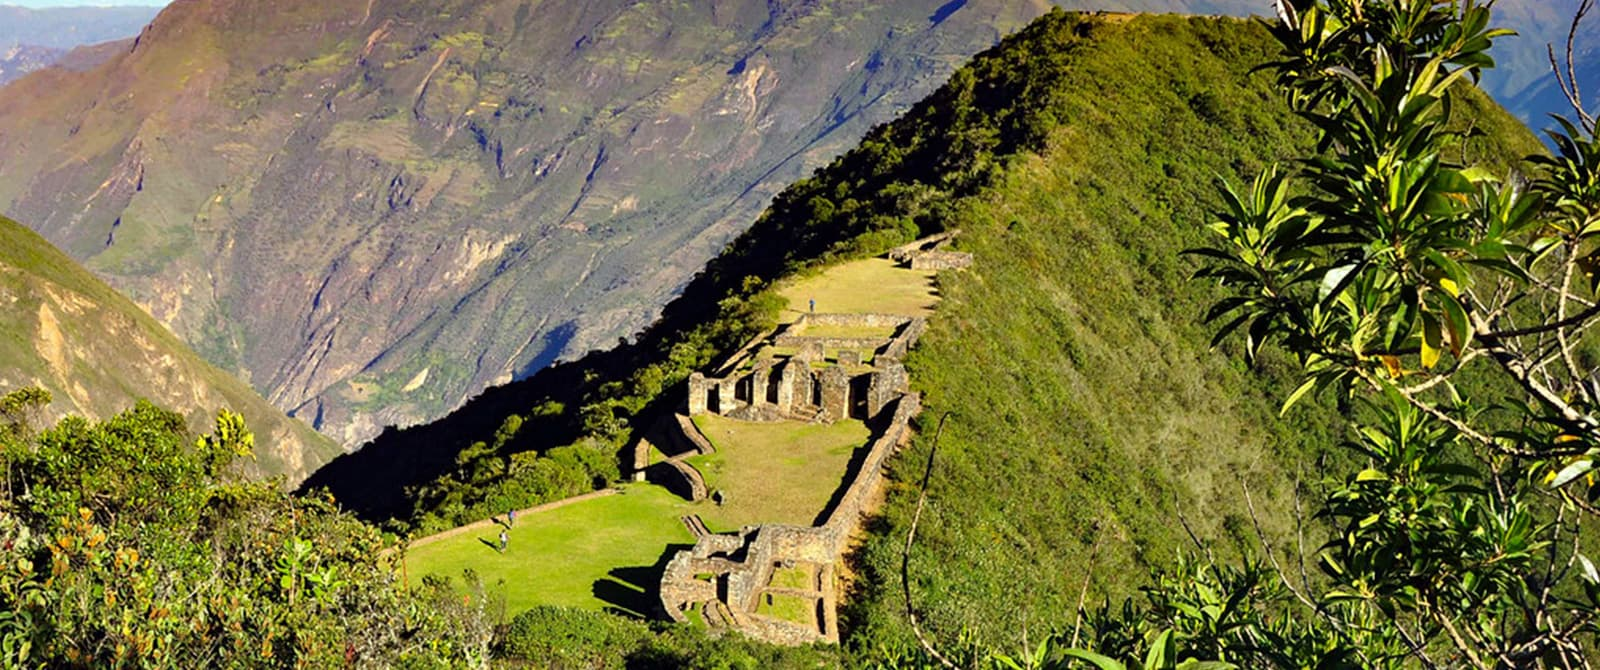 choquequirao full view